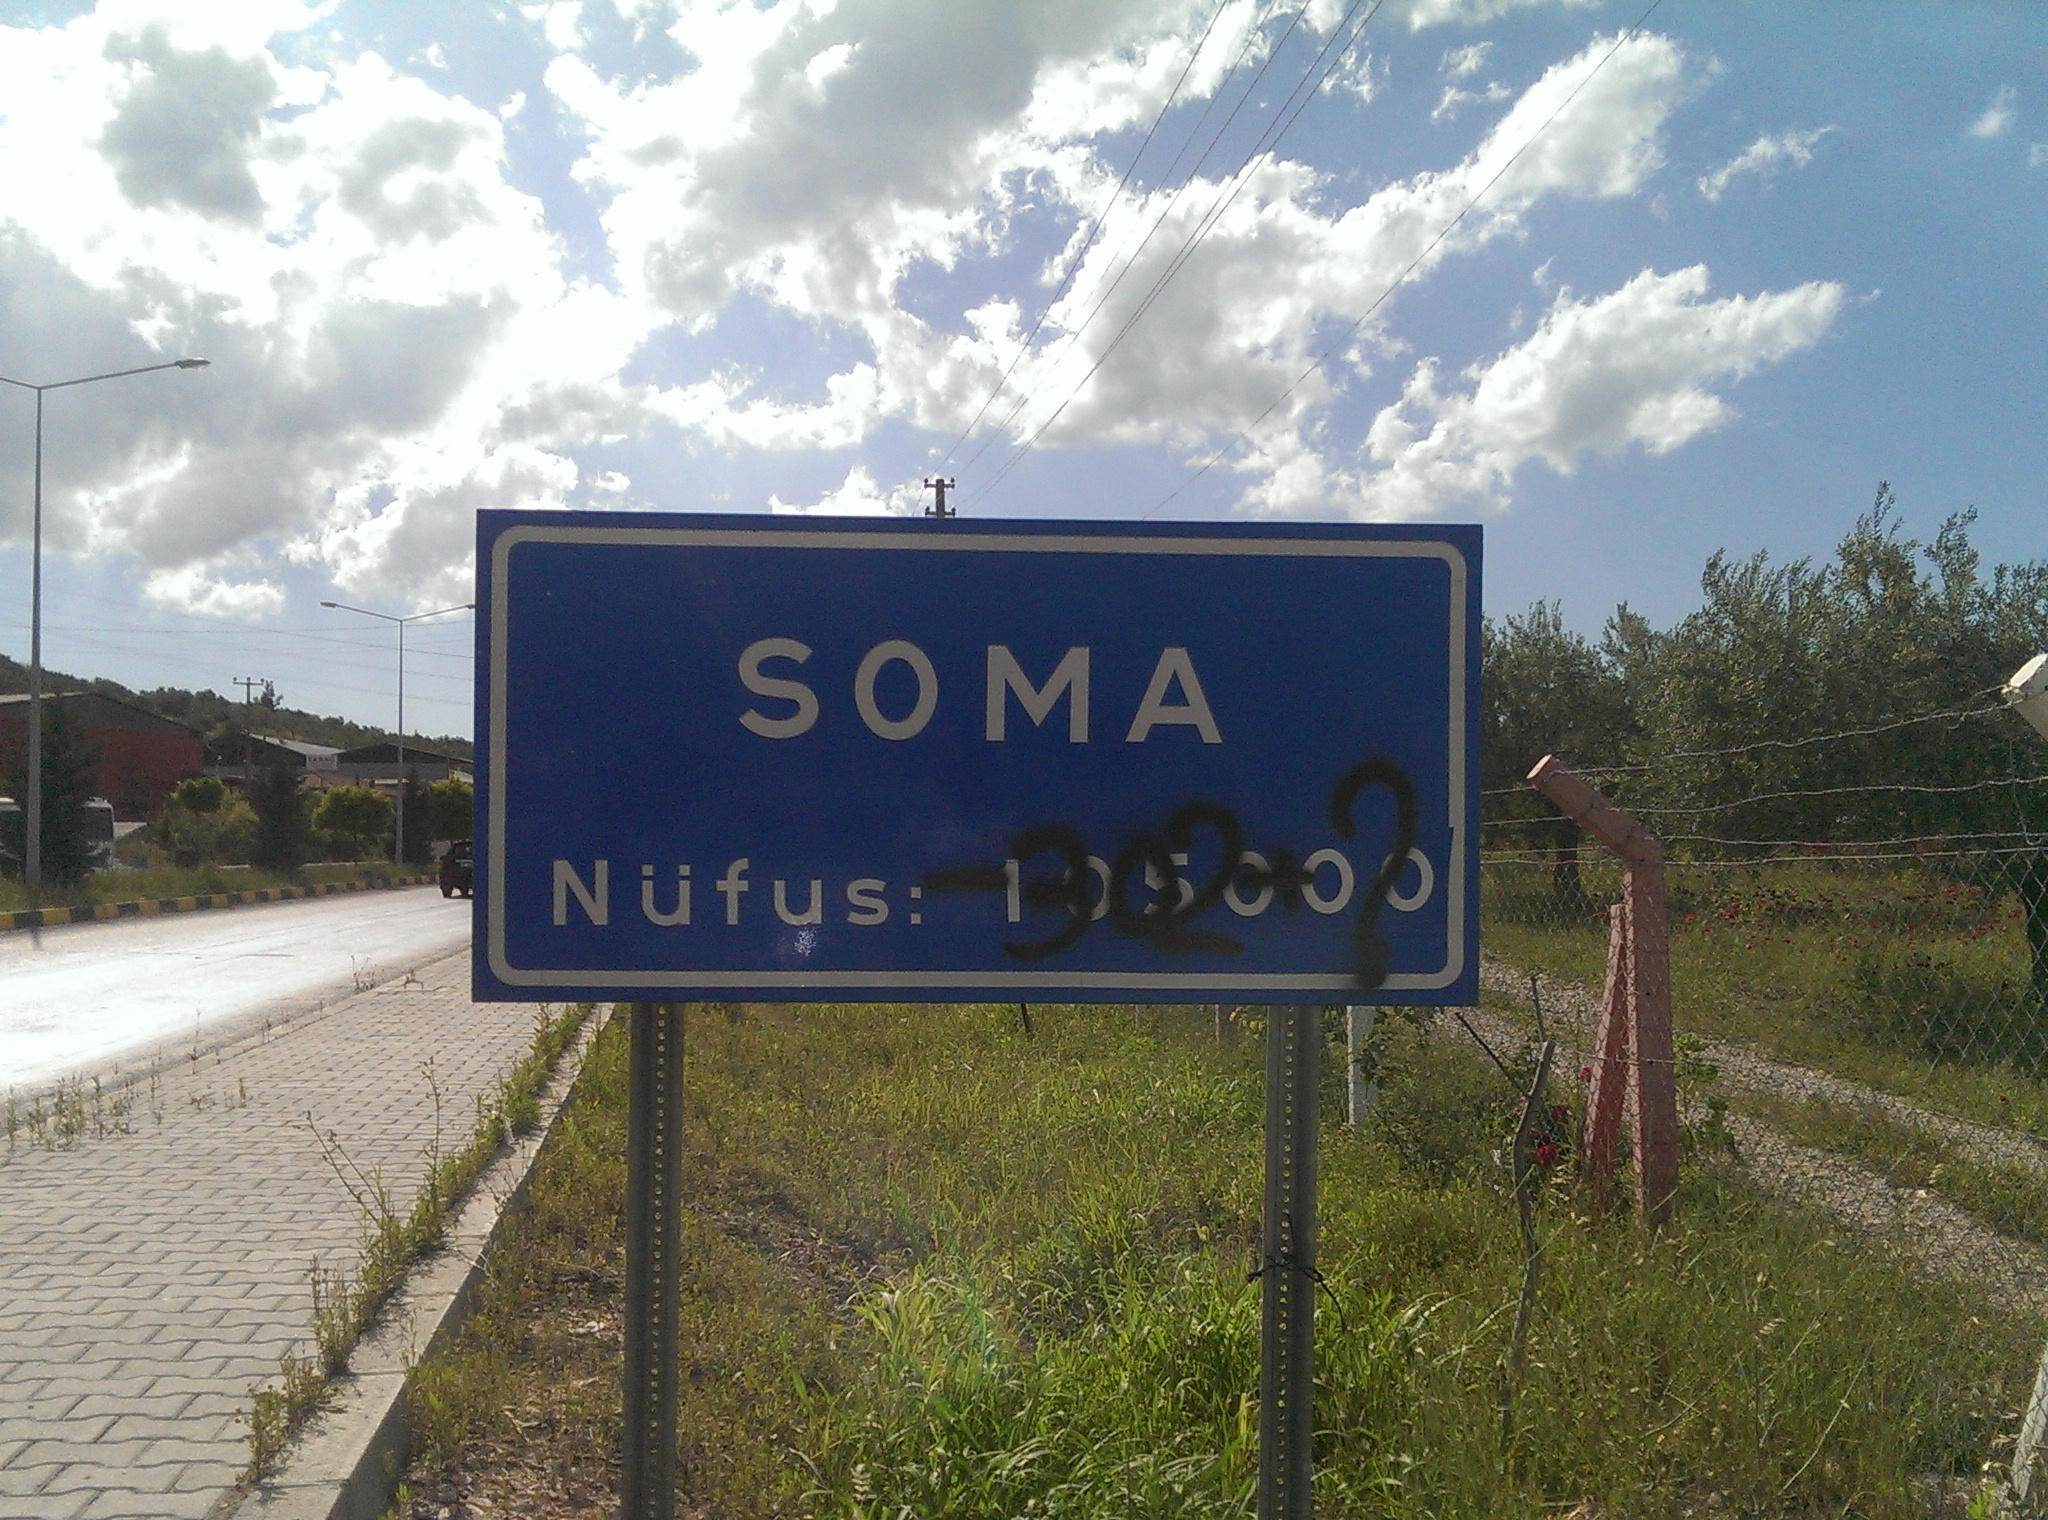 "Photo by Cansın Leylim Ilgaz. ""SOMA Population 105000"", ""-302?"" in graffiti in remembrance of those lost in the coal mine."